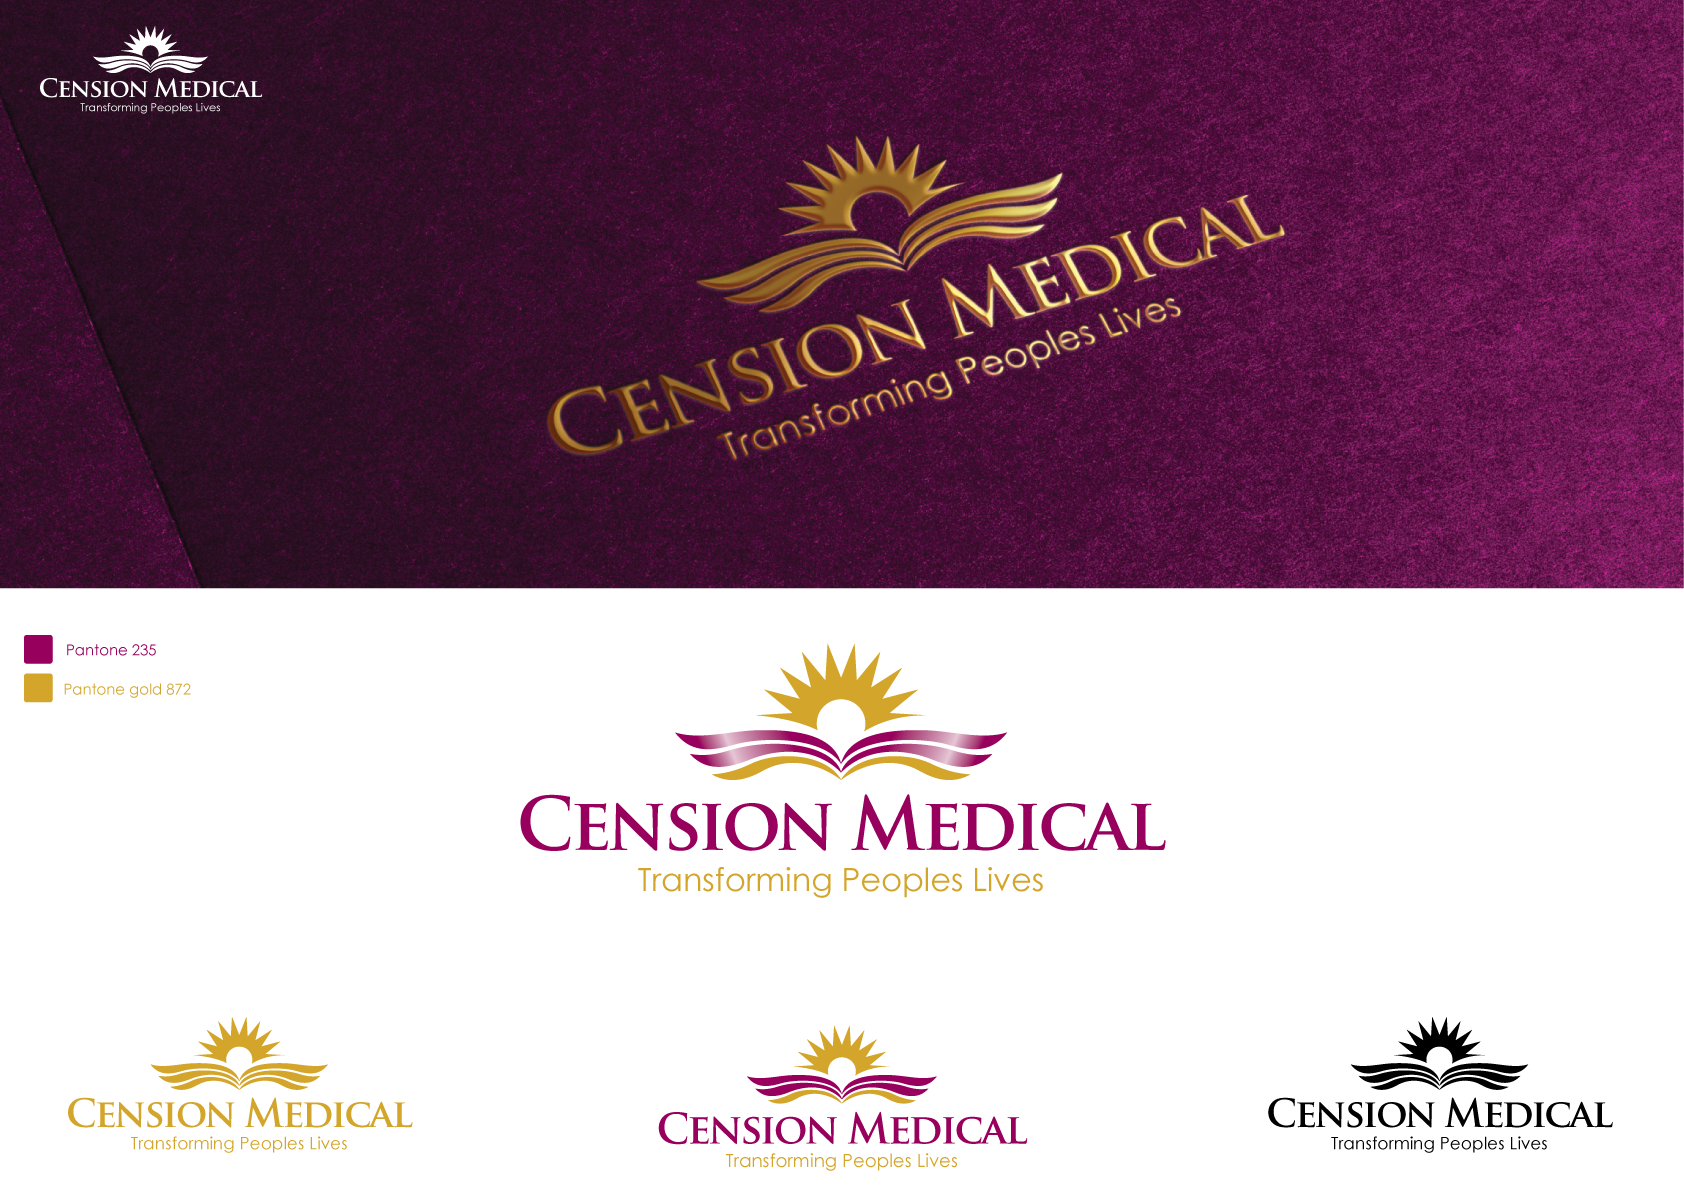 Design a Company and Seperate Product Logo for a Medical Company using symbolism